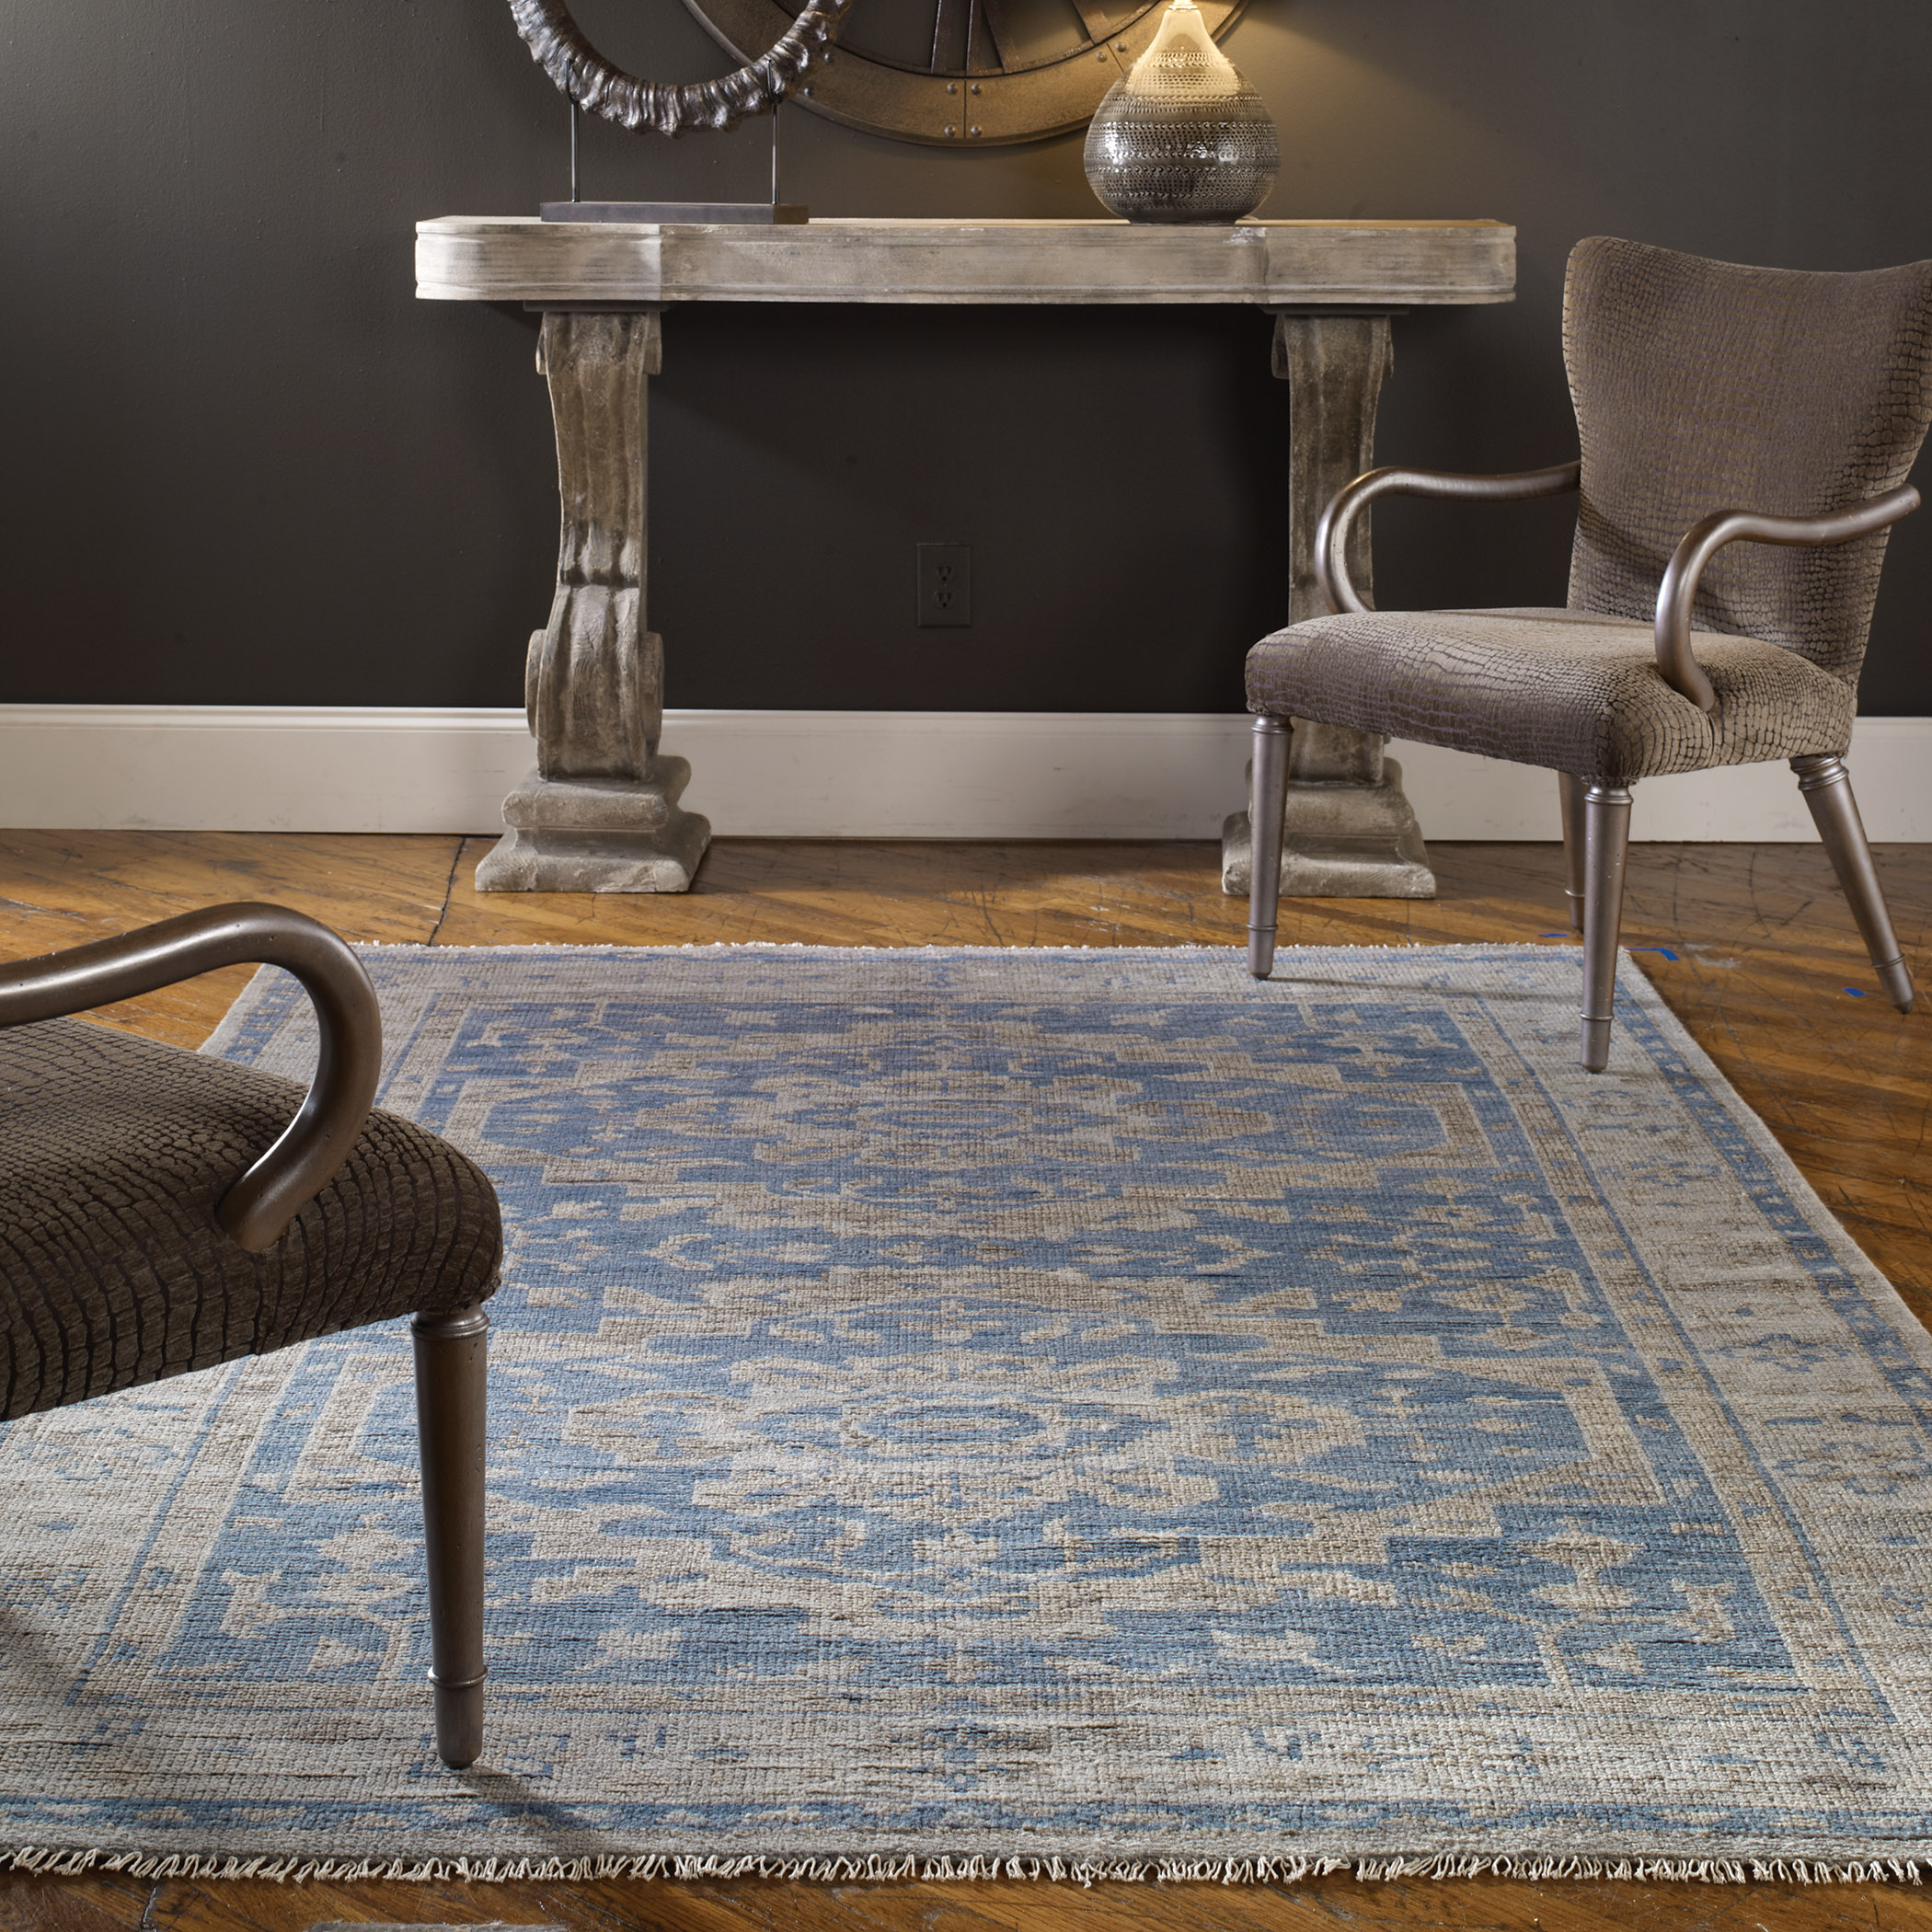 Uttermost Rugs Adana 8 X 10 Rug - Blue - Item Number: 70024-8